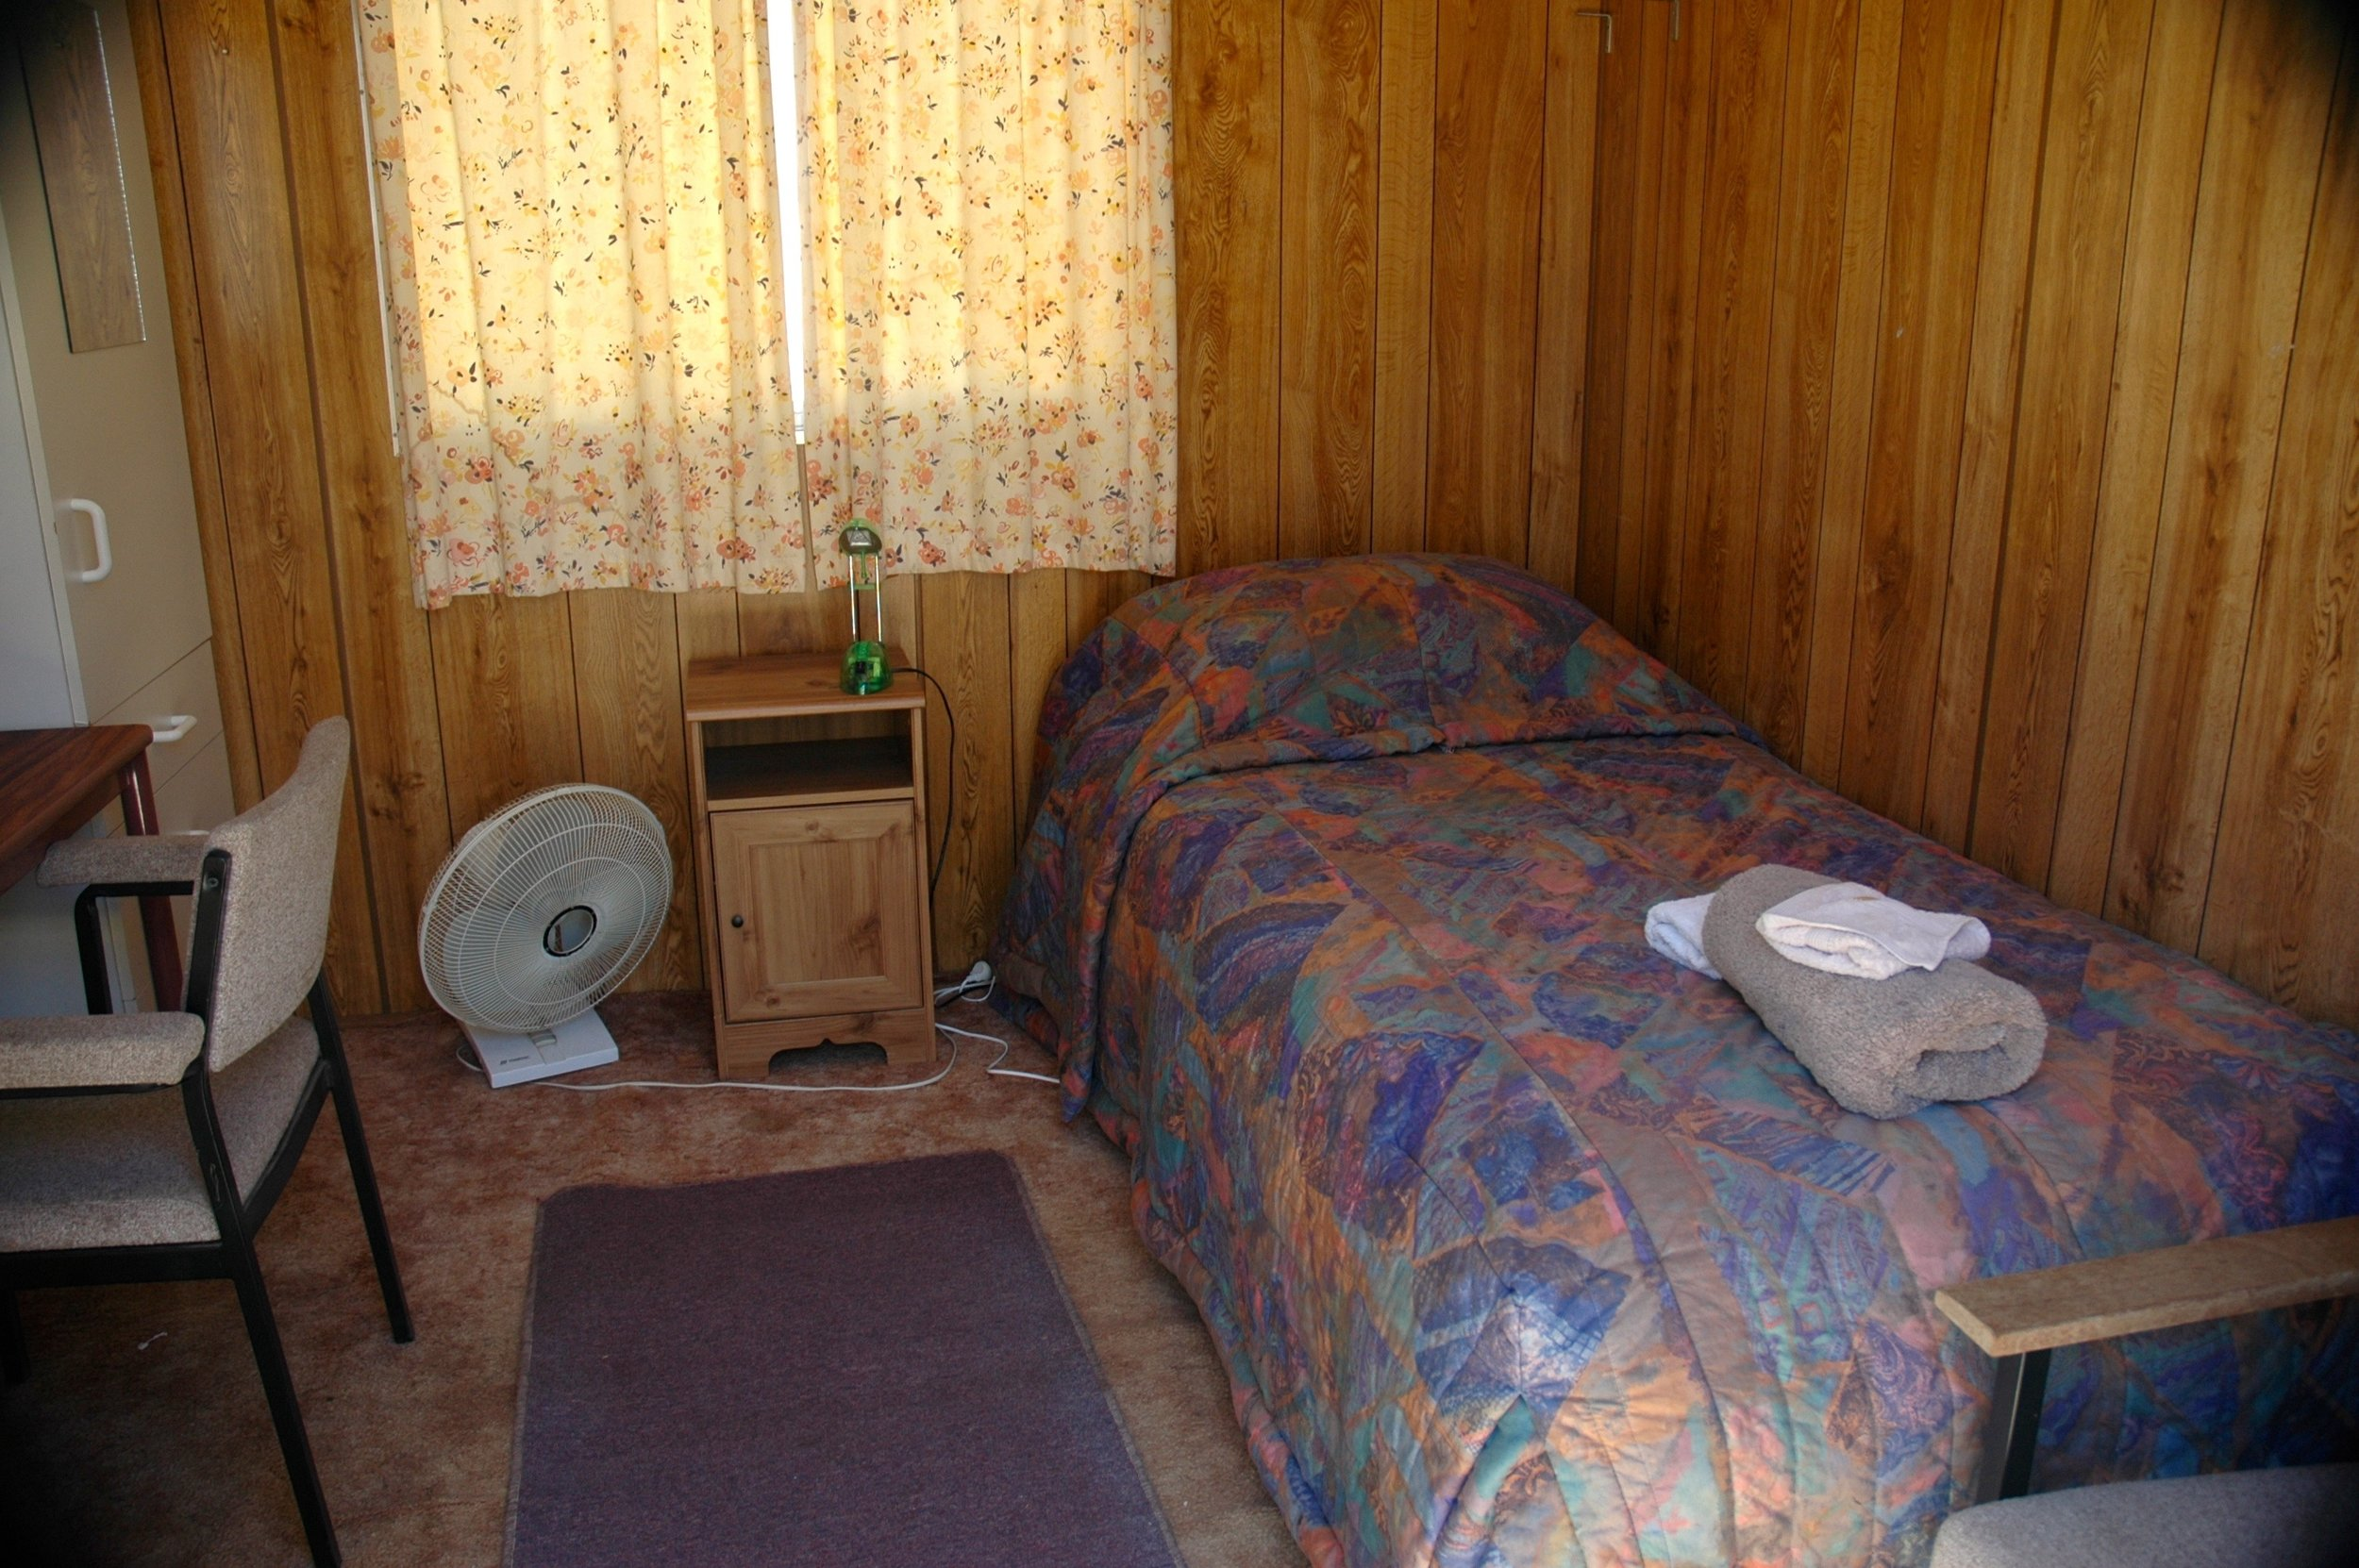 - Your room has bedding, towel, electric blanket, desk, chair.